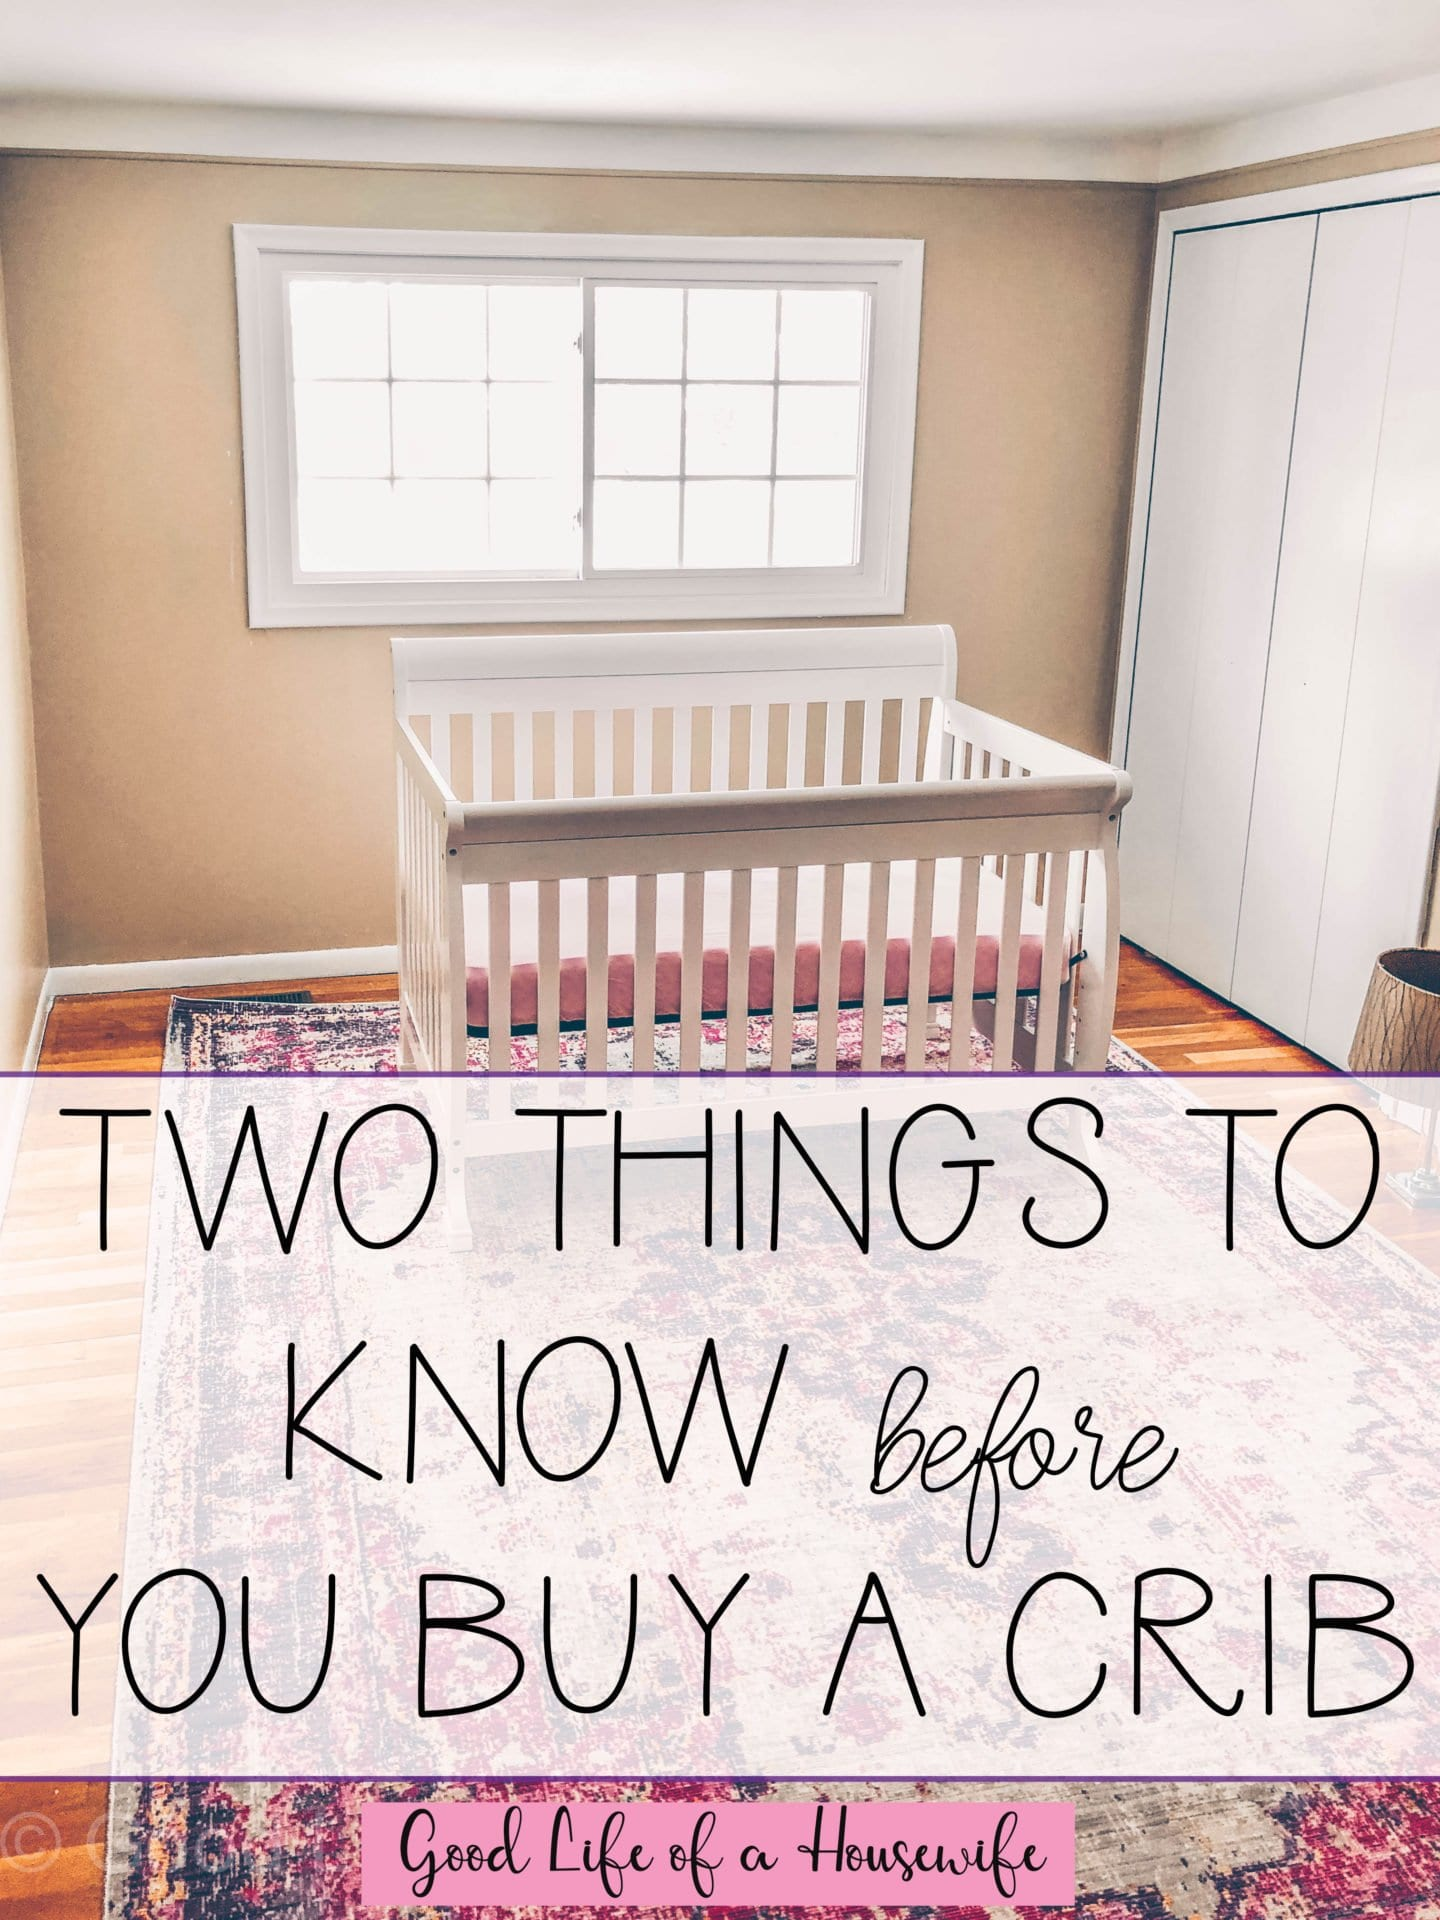 Two Things to Know Before you Buy a Crib